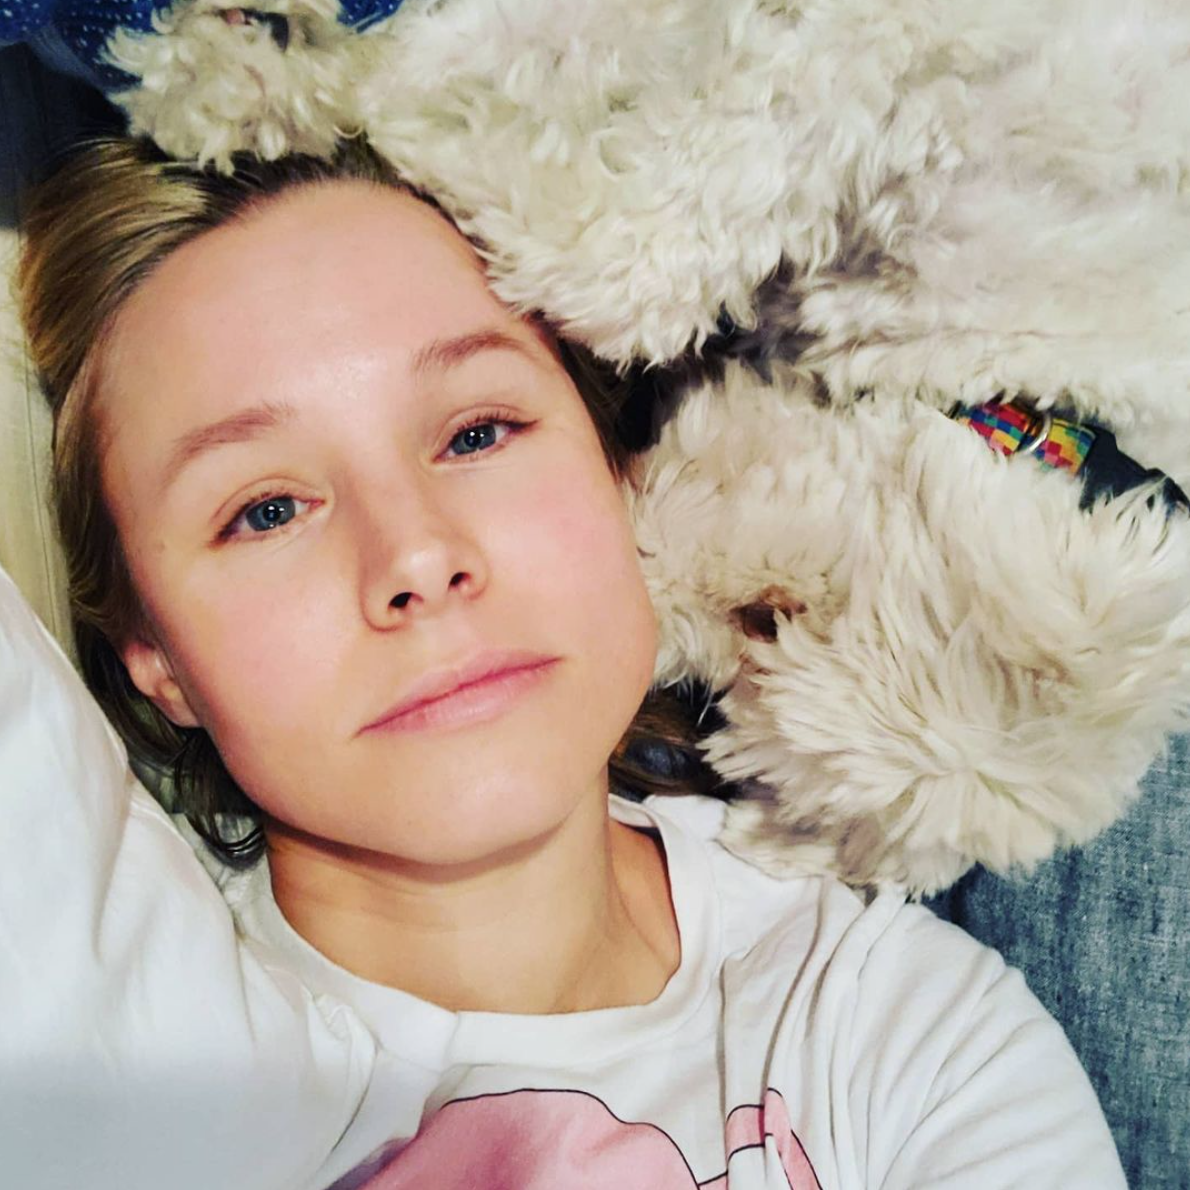 actress-rescue-advocate-kristen-bell-calls-dogs-natures-antidepressants